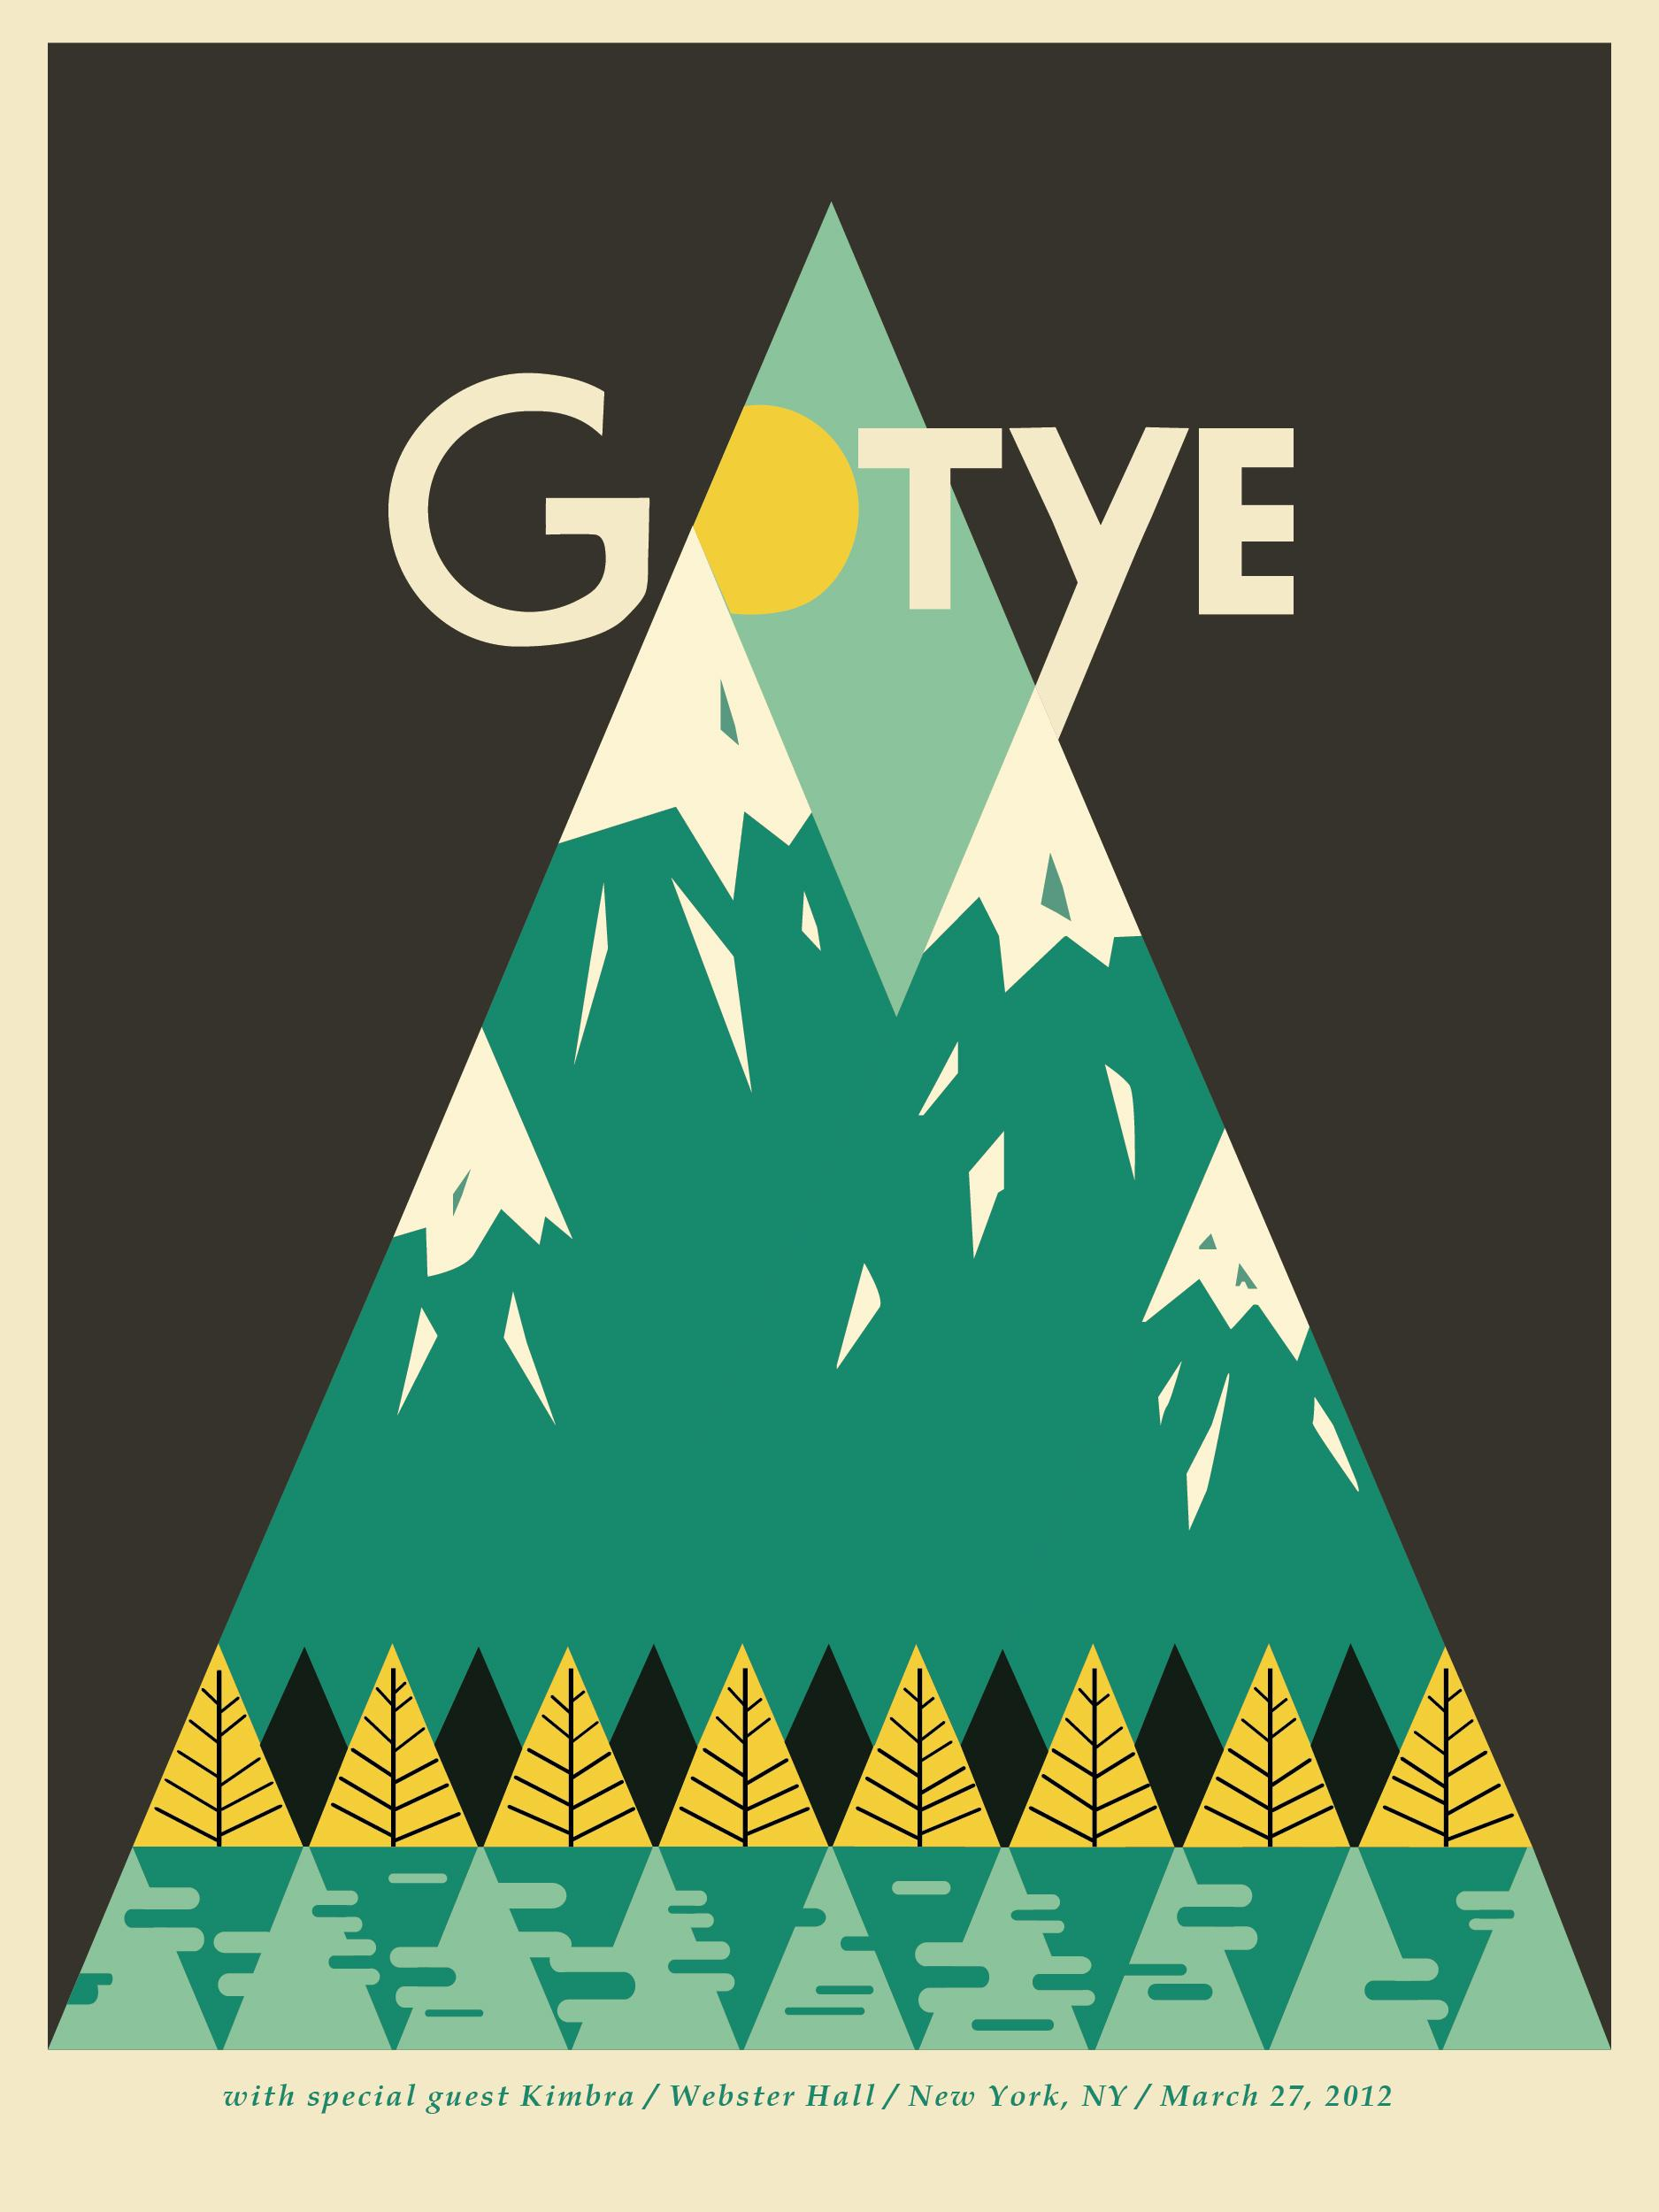 Gotye Poster - image 1 - student project